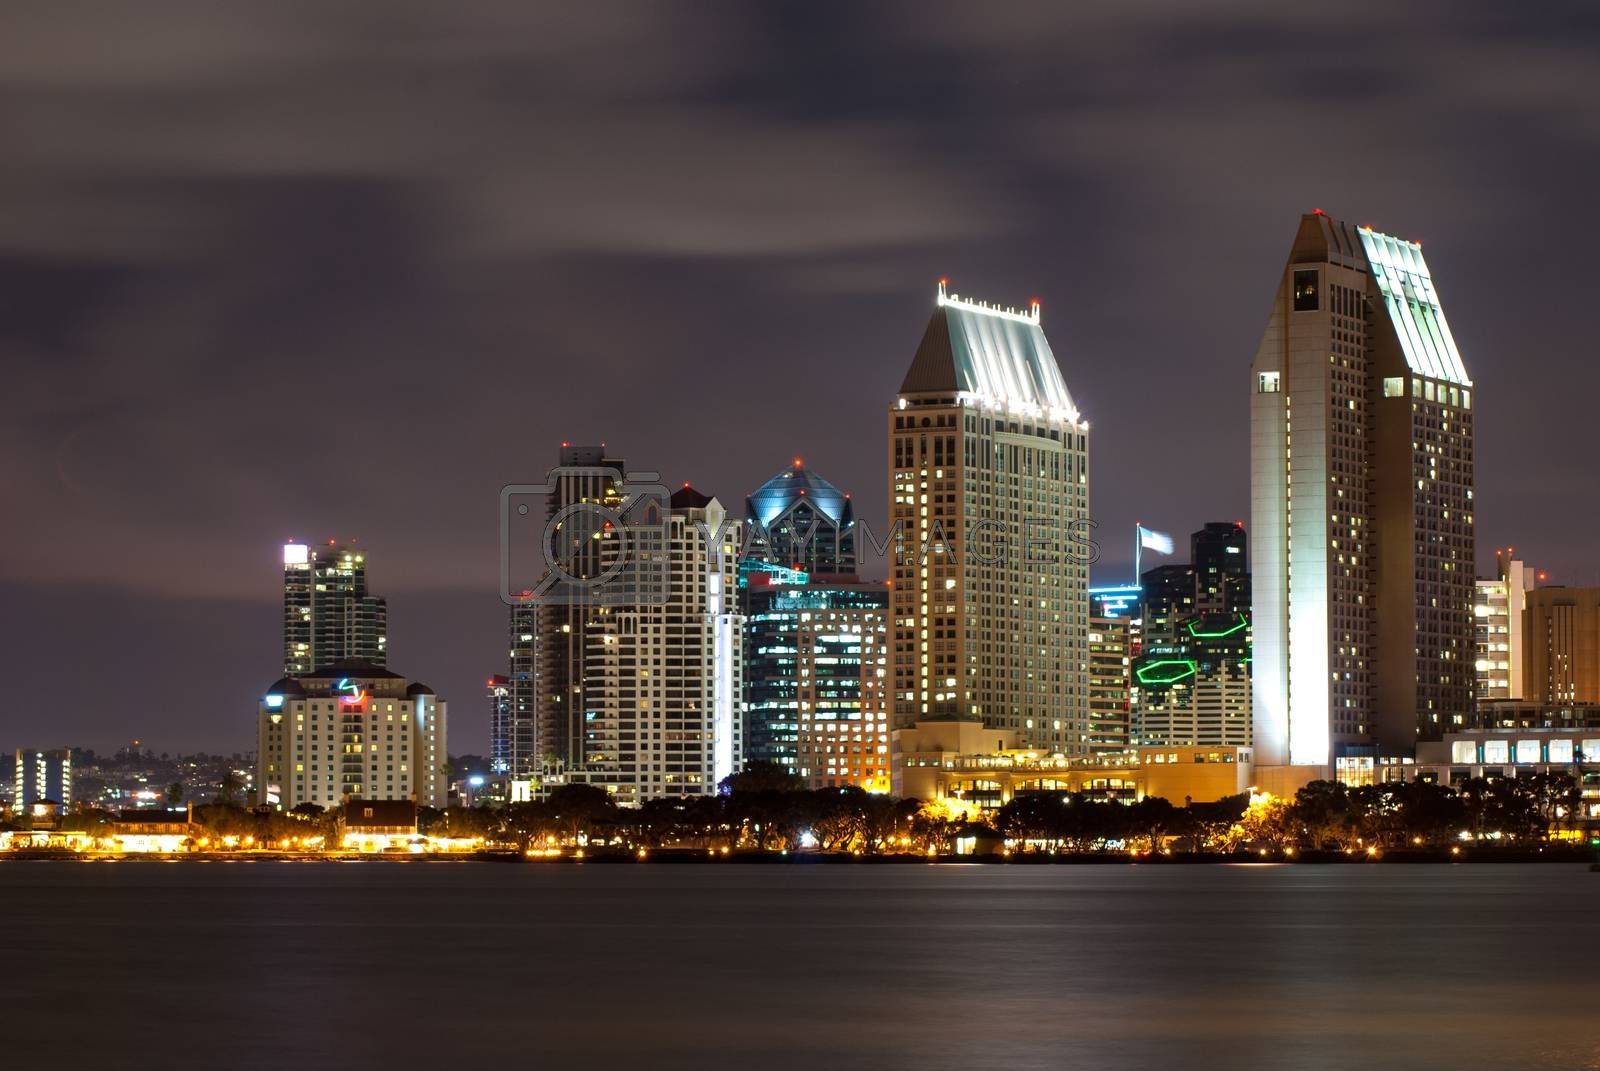 San Diego Cityscape at Night, with clouds